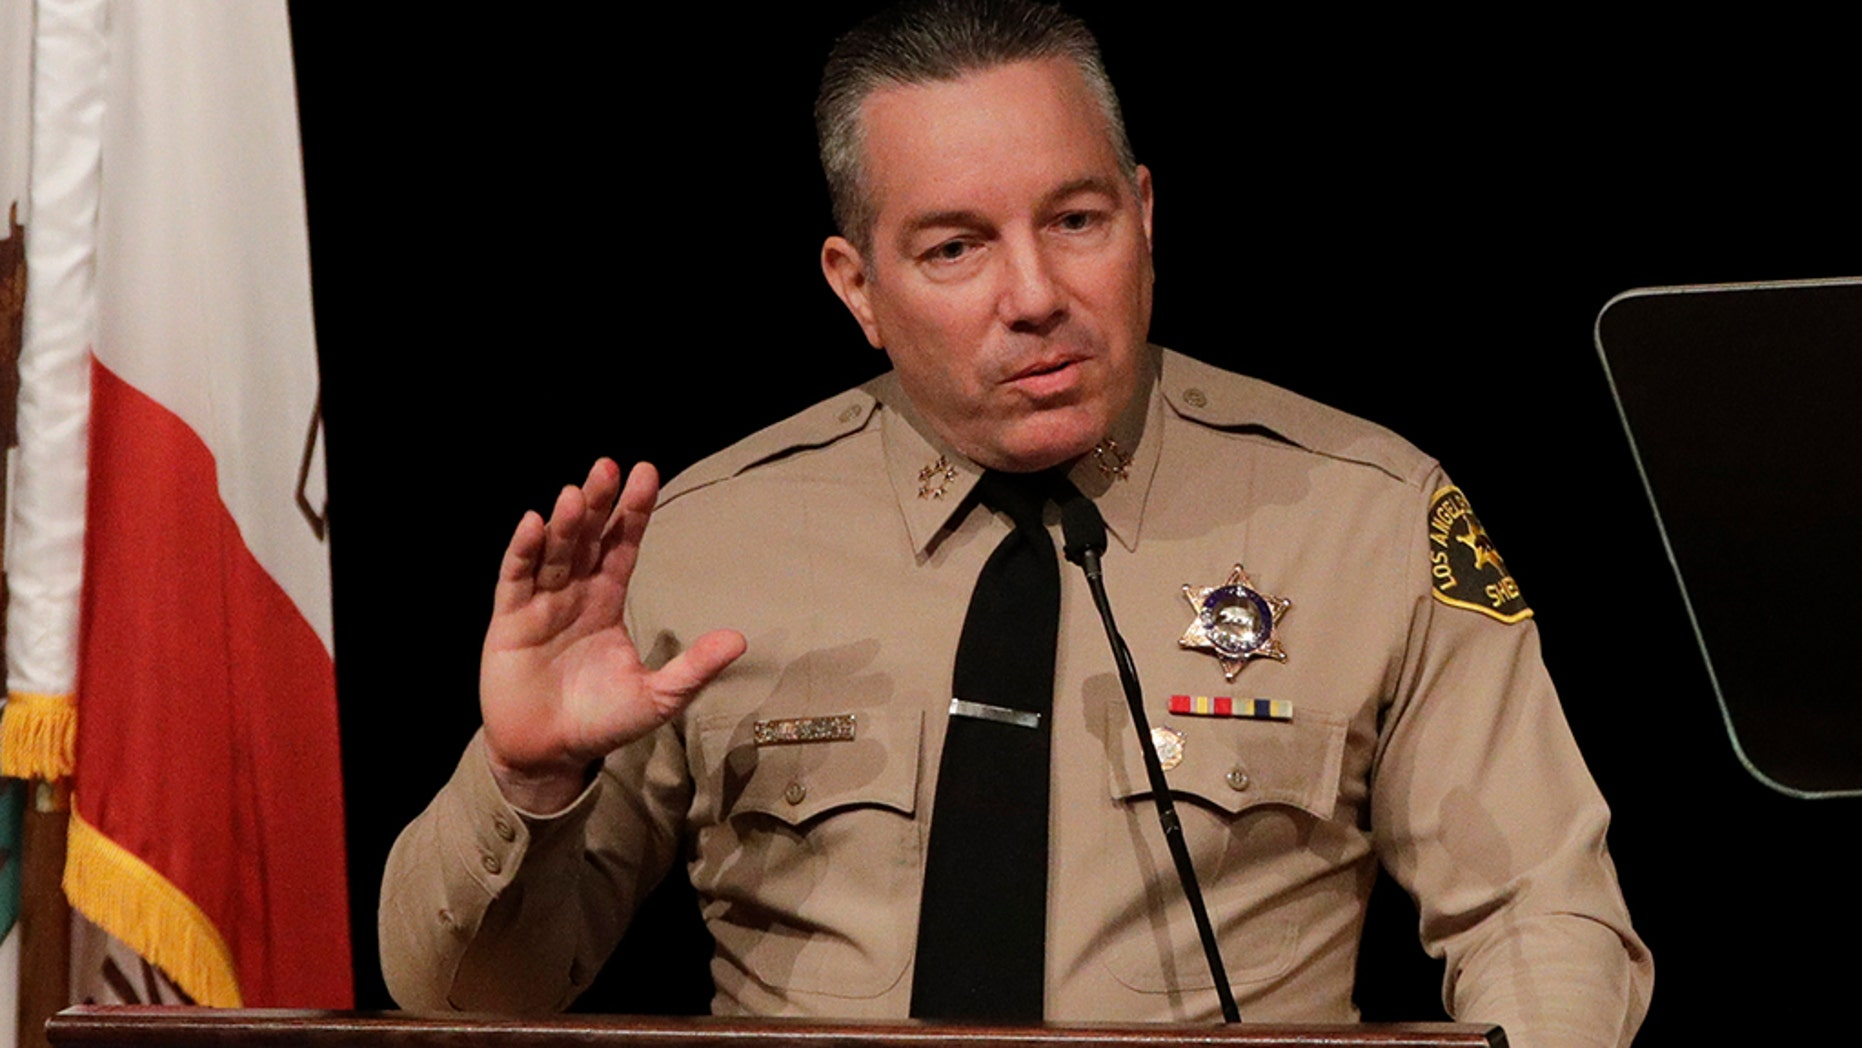 Newly elected Los Angeles County Sheriff Alex Villanueva during a swearing-in ceremony Monday, Dec. 3, in Monterey Park. (AP Photo/Jae C. Hong)